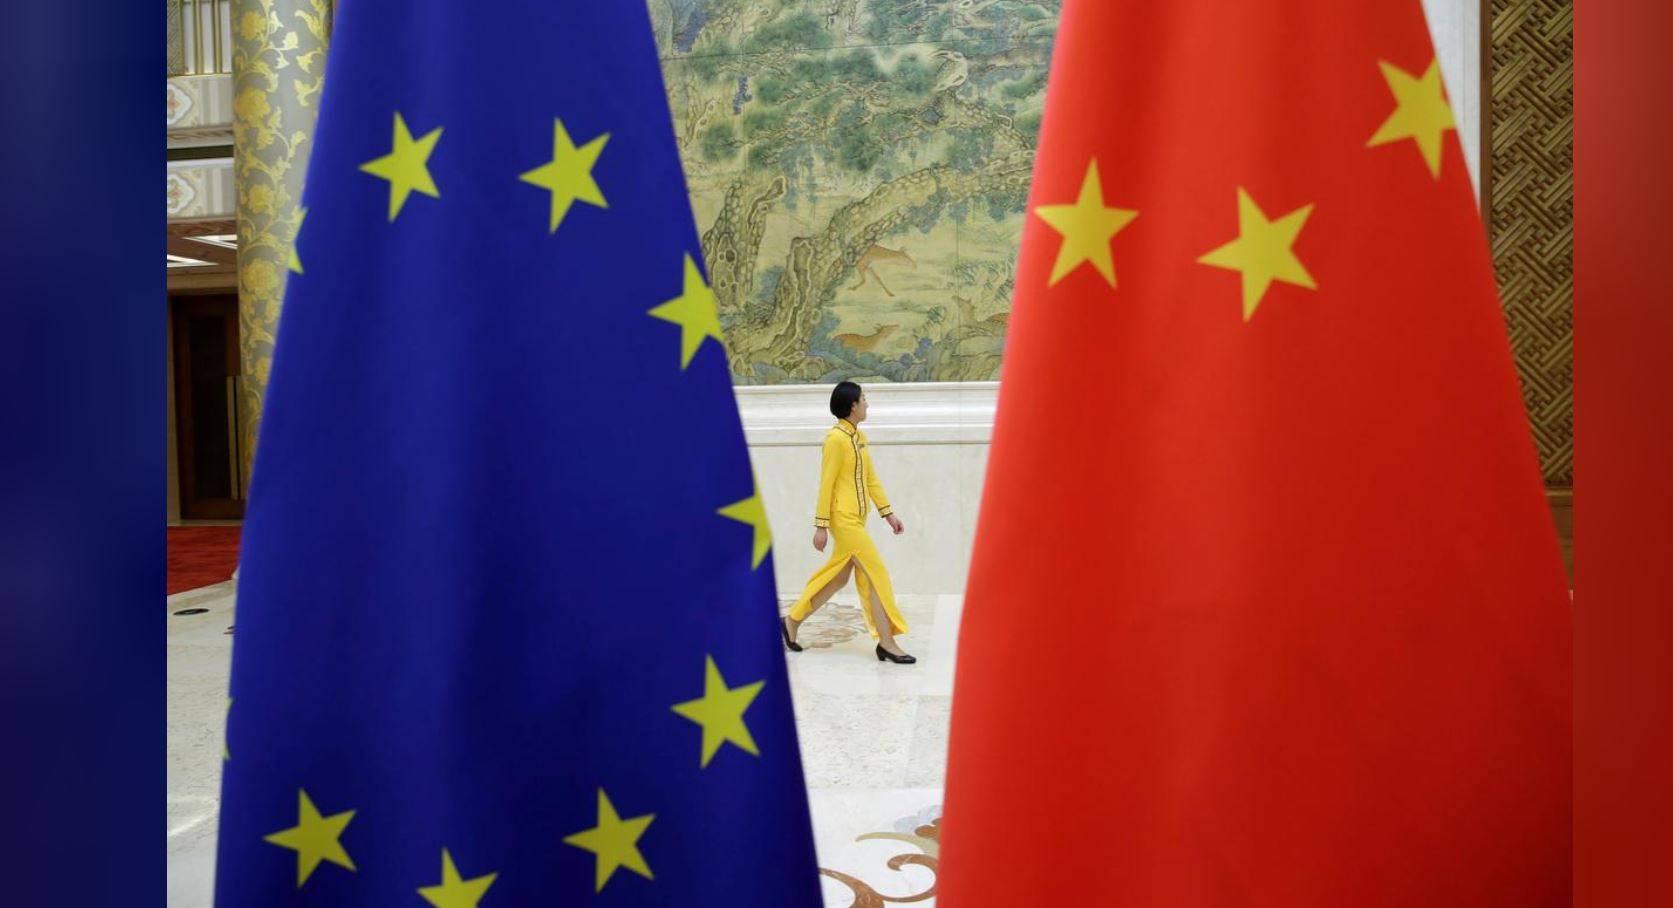 Trade, coronavirus and environment on agenda in EU-China talks